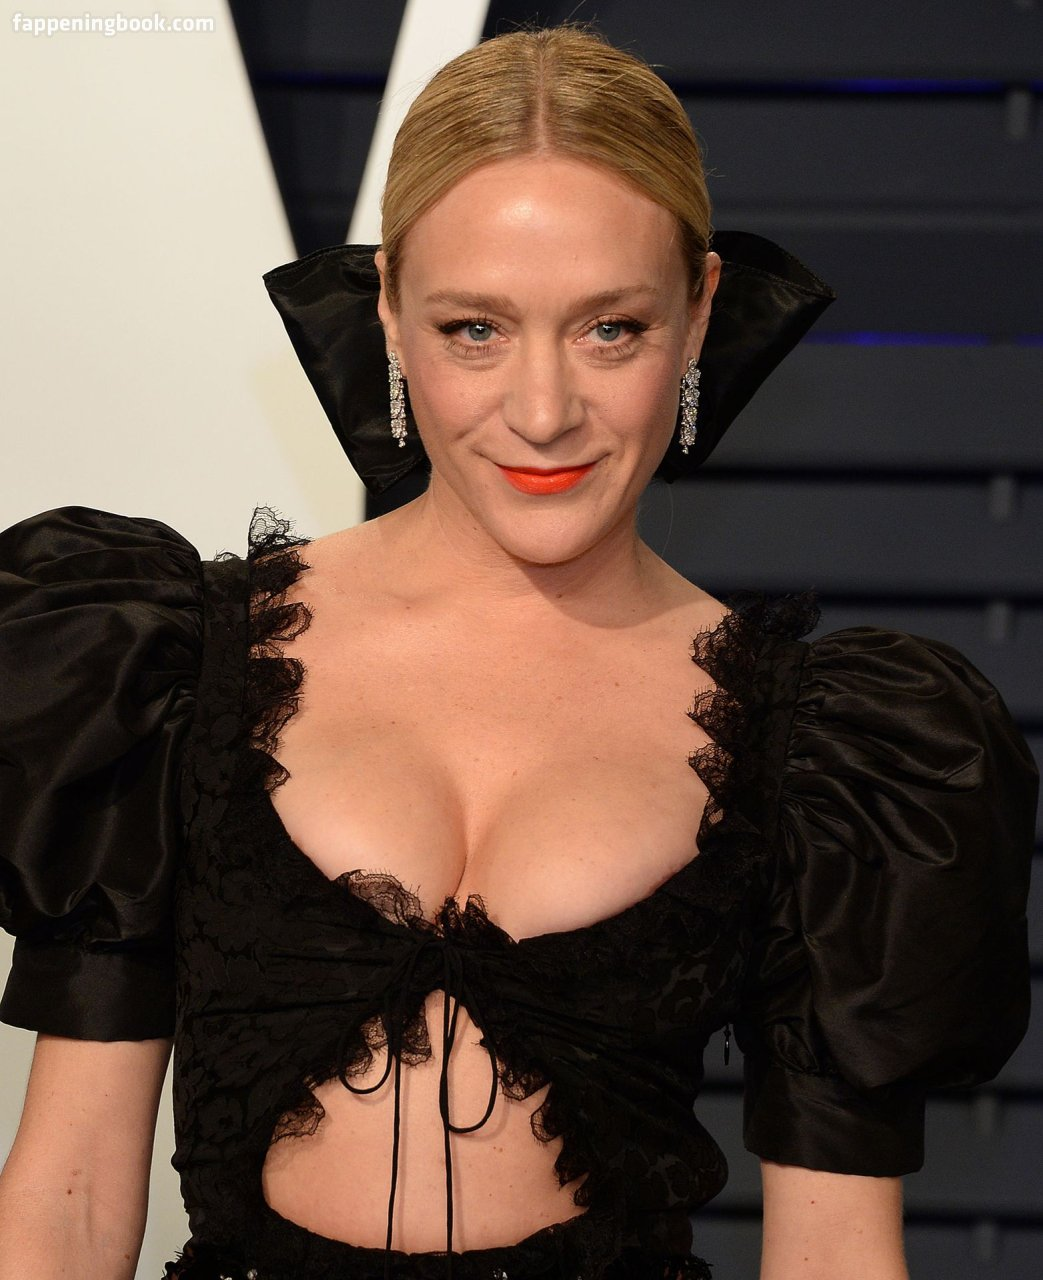 Chloë Sevigny Nude, Sexy, The Fappening, Uncensored